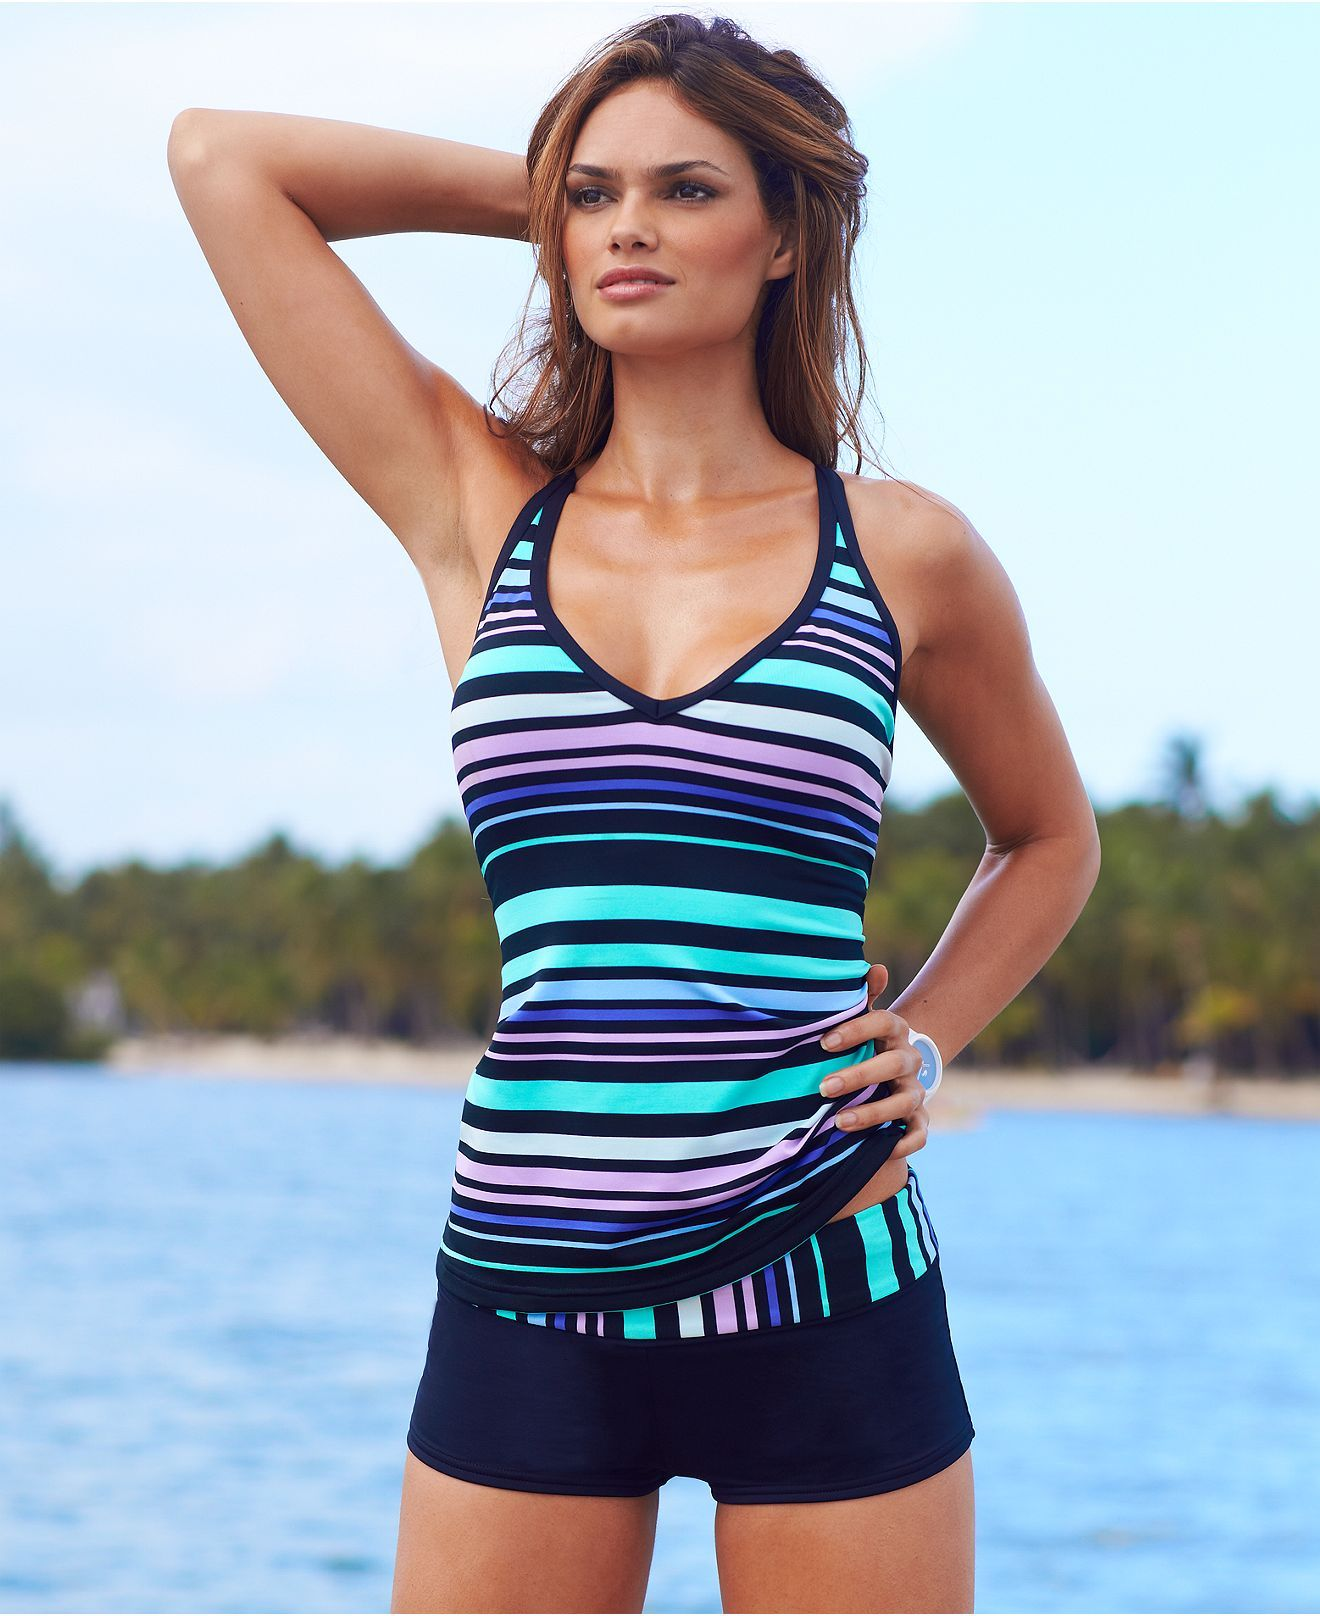 e1c86e4e3b9f7 JAG Swimsuit, Crisscross Striped Tankini Top & Striped Boy Shorts Swim  Bottom - Swimwear - Women - Macy's